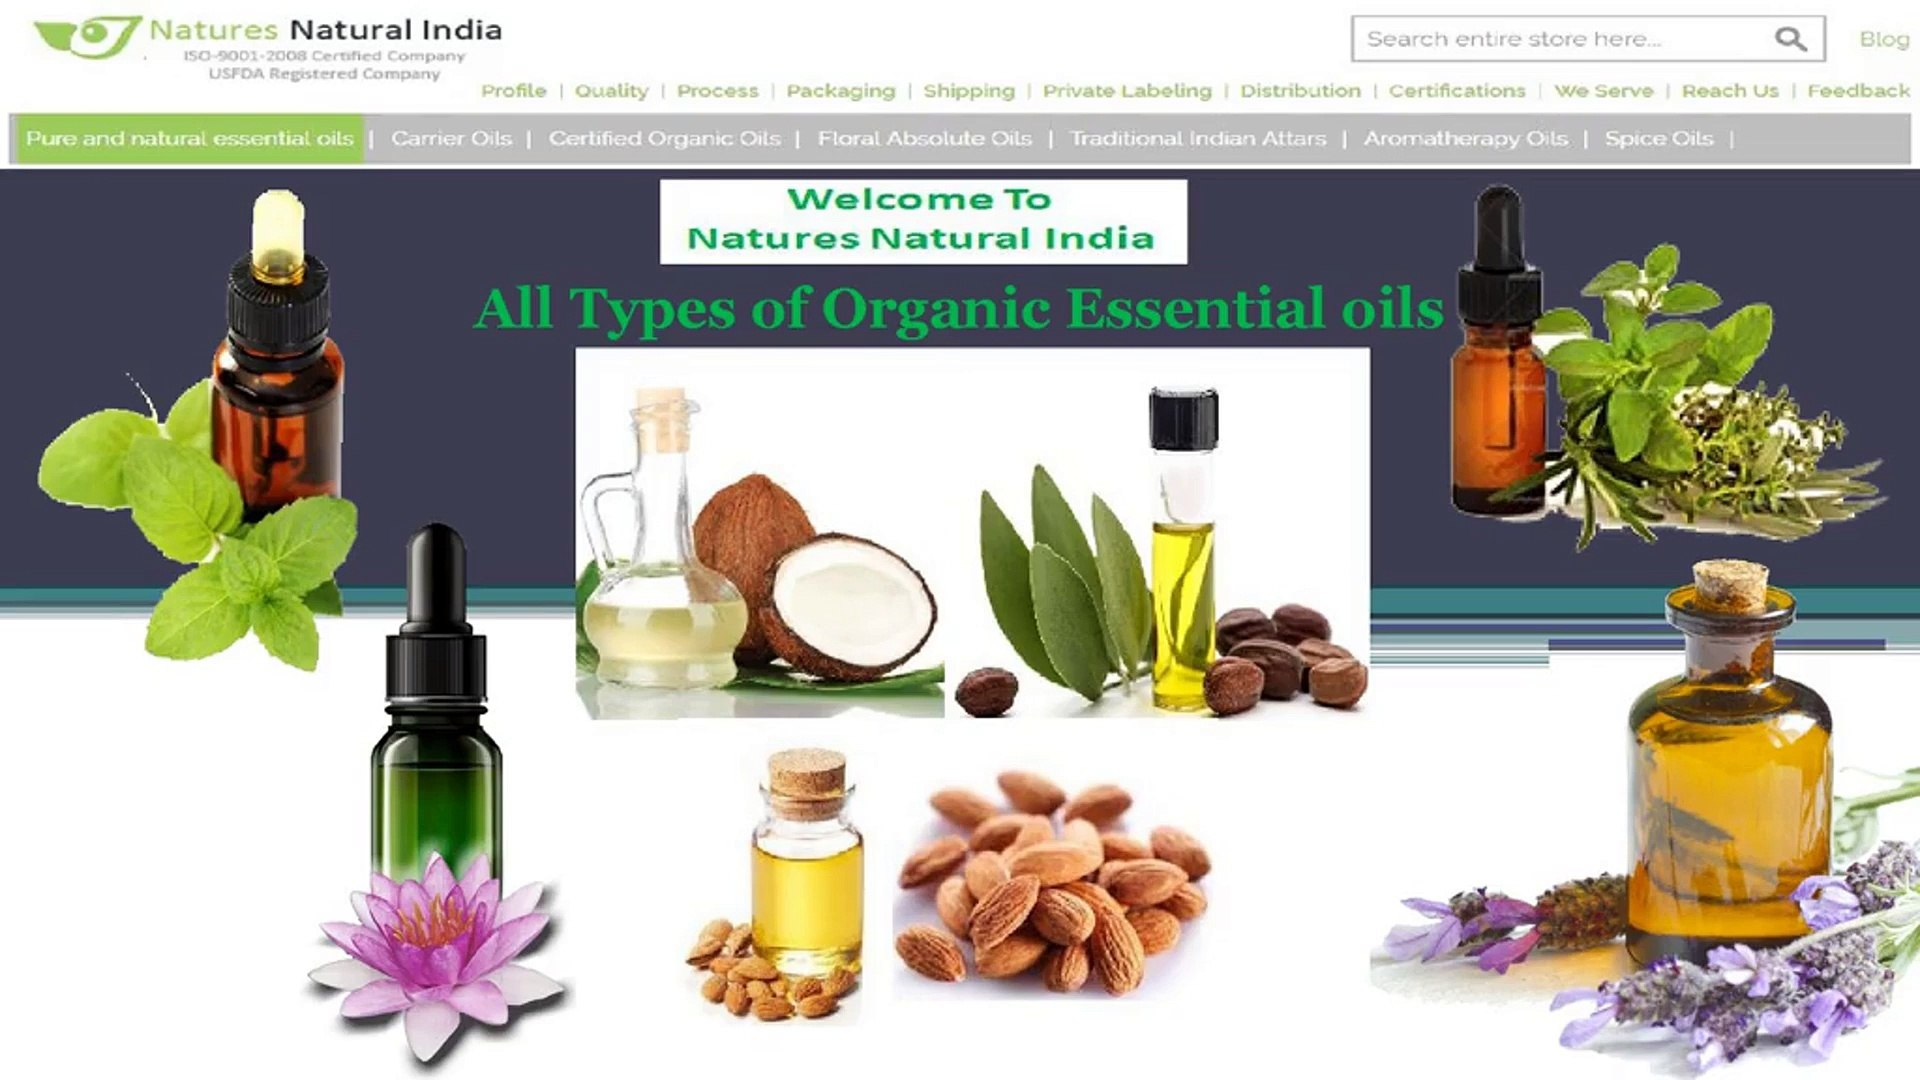 Natures Natural India Supplier of Wholesale Organic Essential Oils